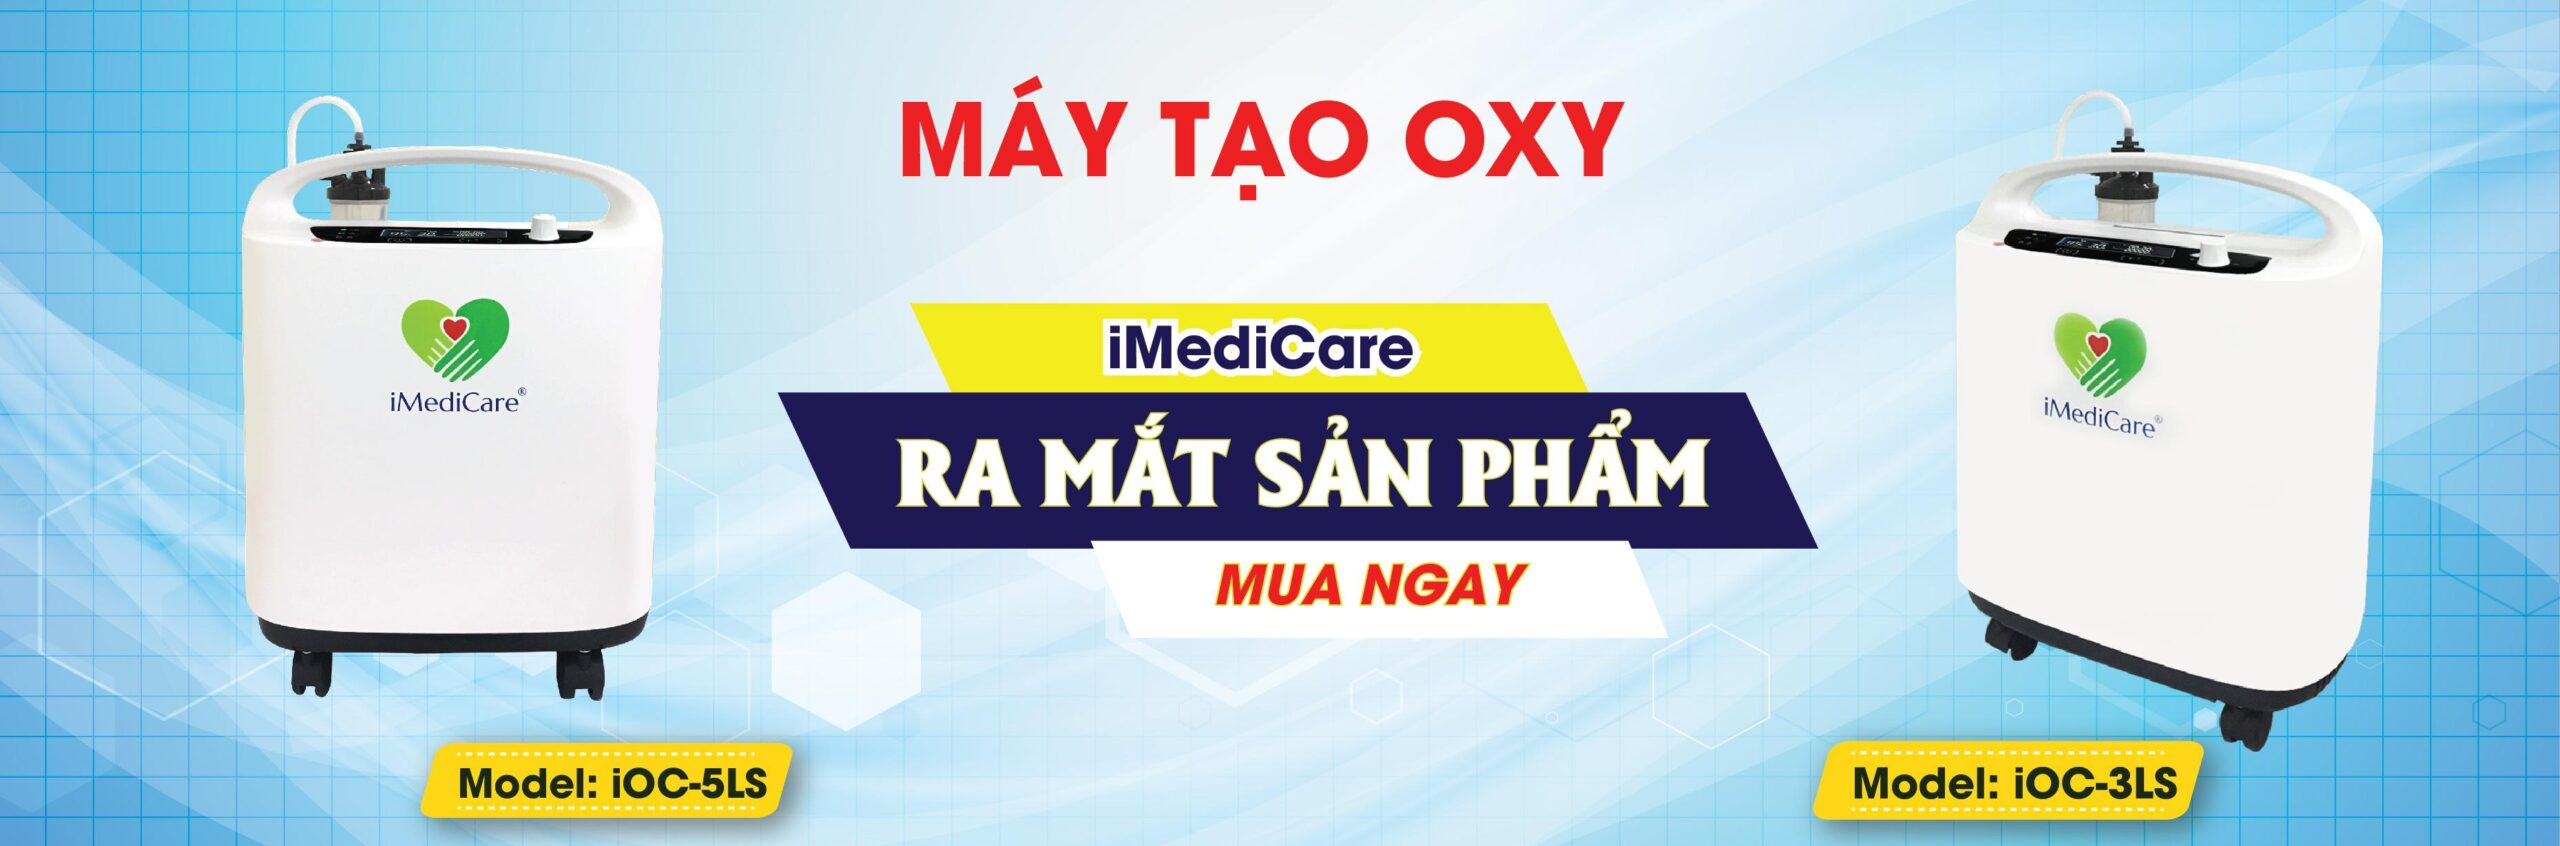 banner may tao oxy imedicare ls imedicare vn